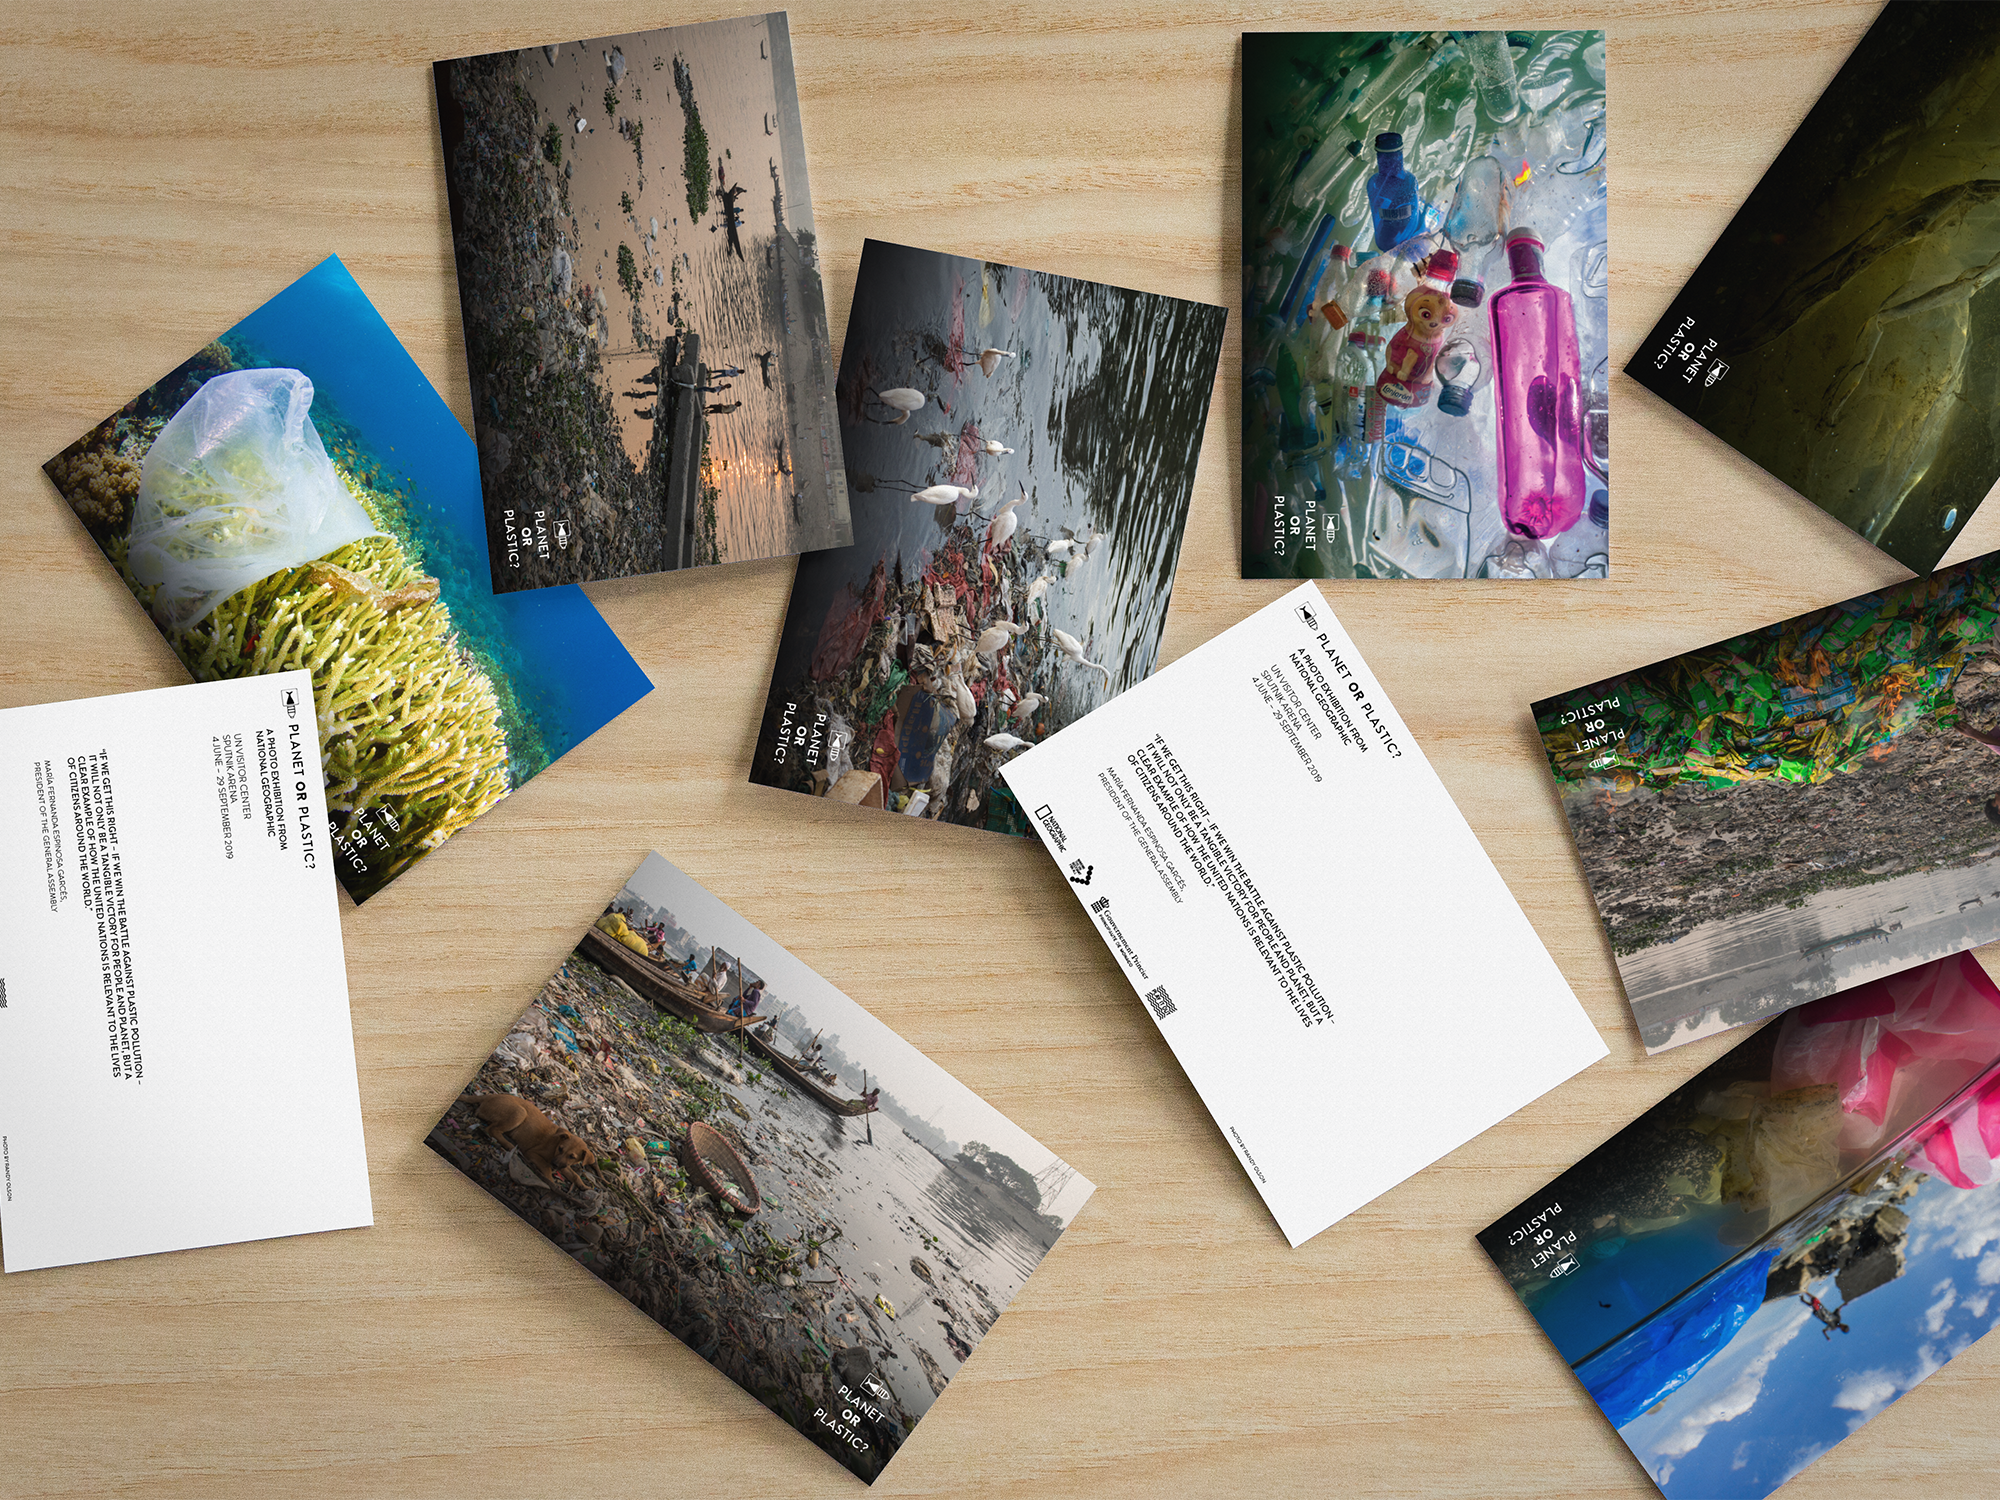 Postcards created between TM, Nat Geo, and Play It Out to raise environmental awareness